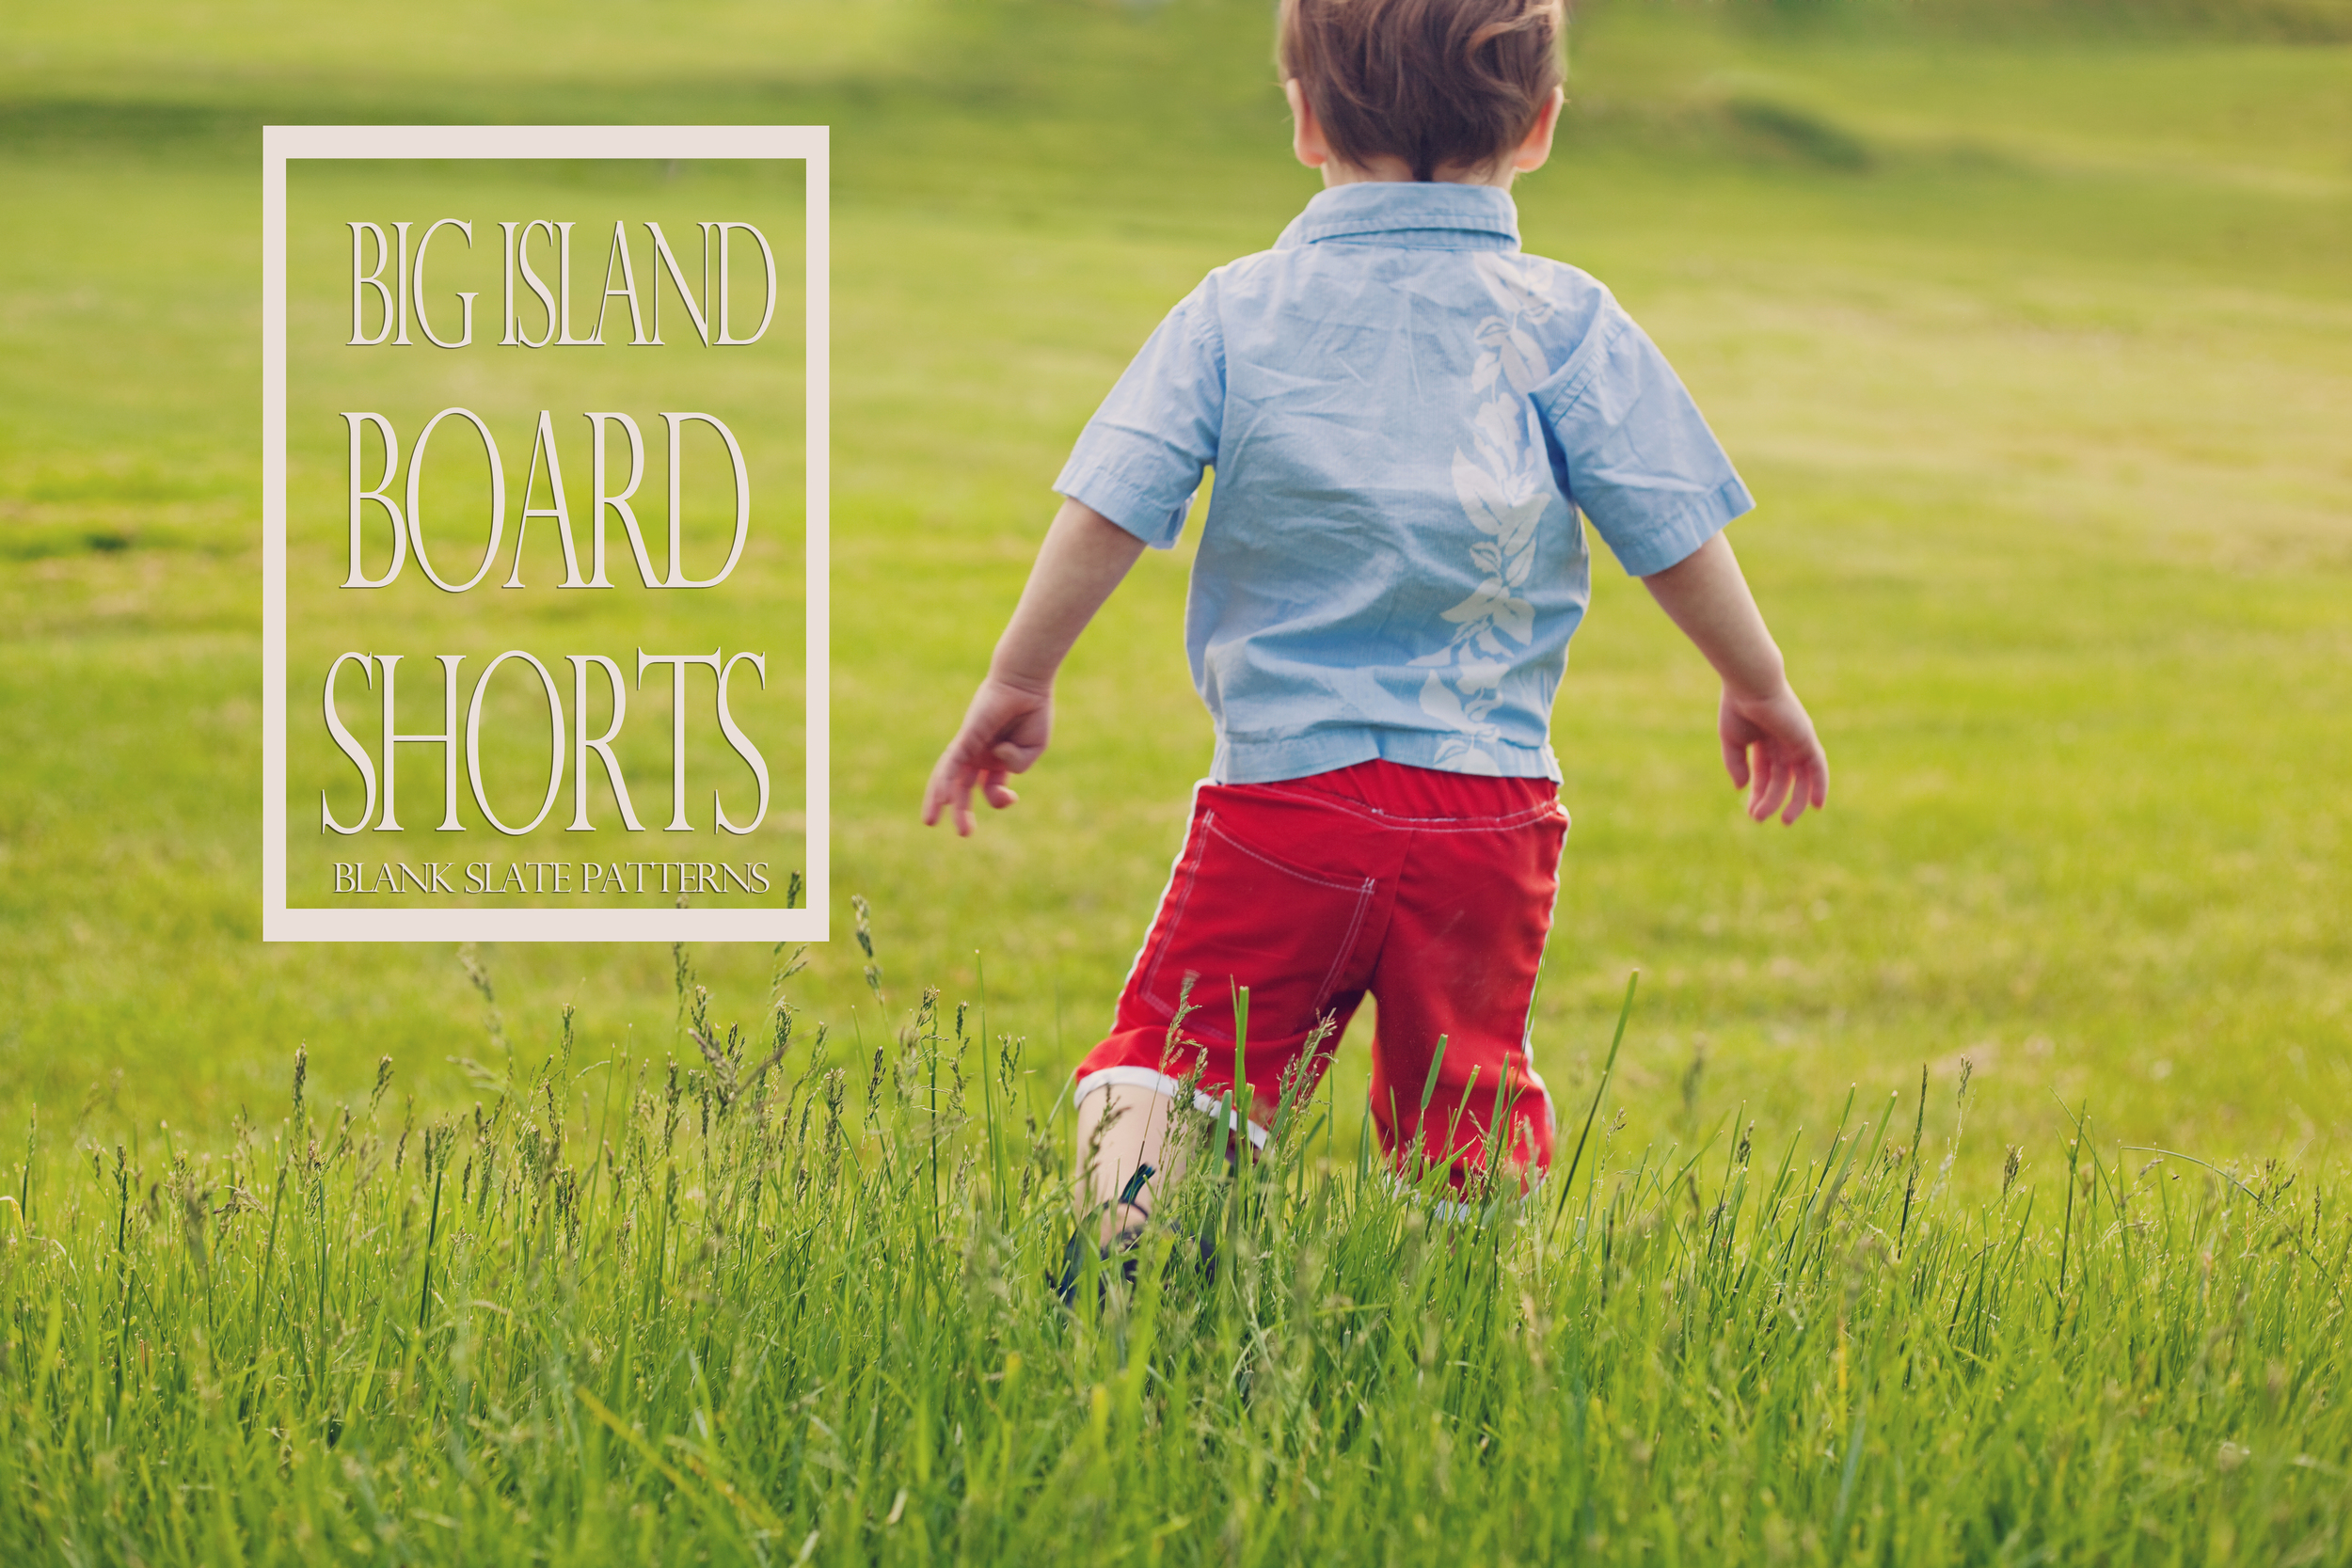 Upcycled Big Island Board Shorts from Blank Slate Patterns.